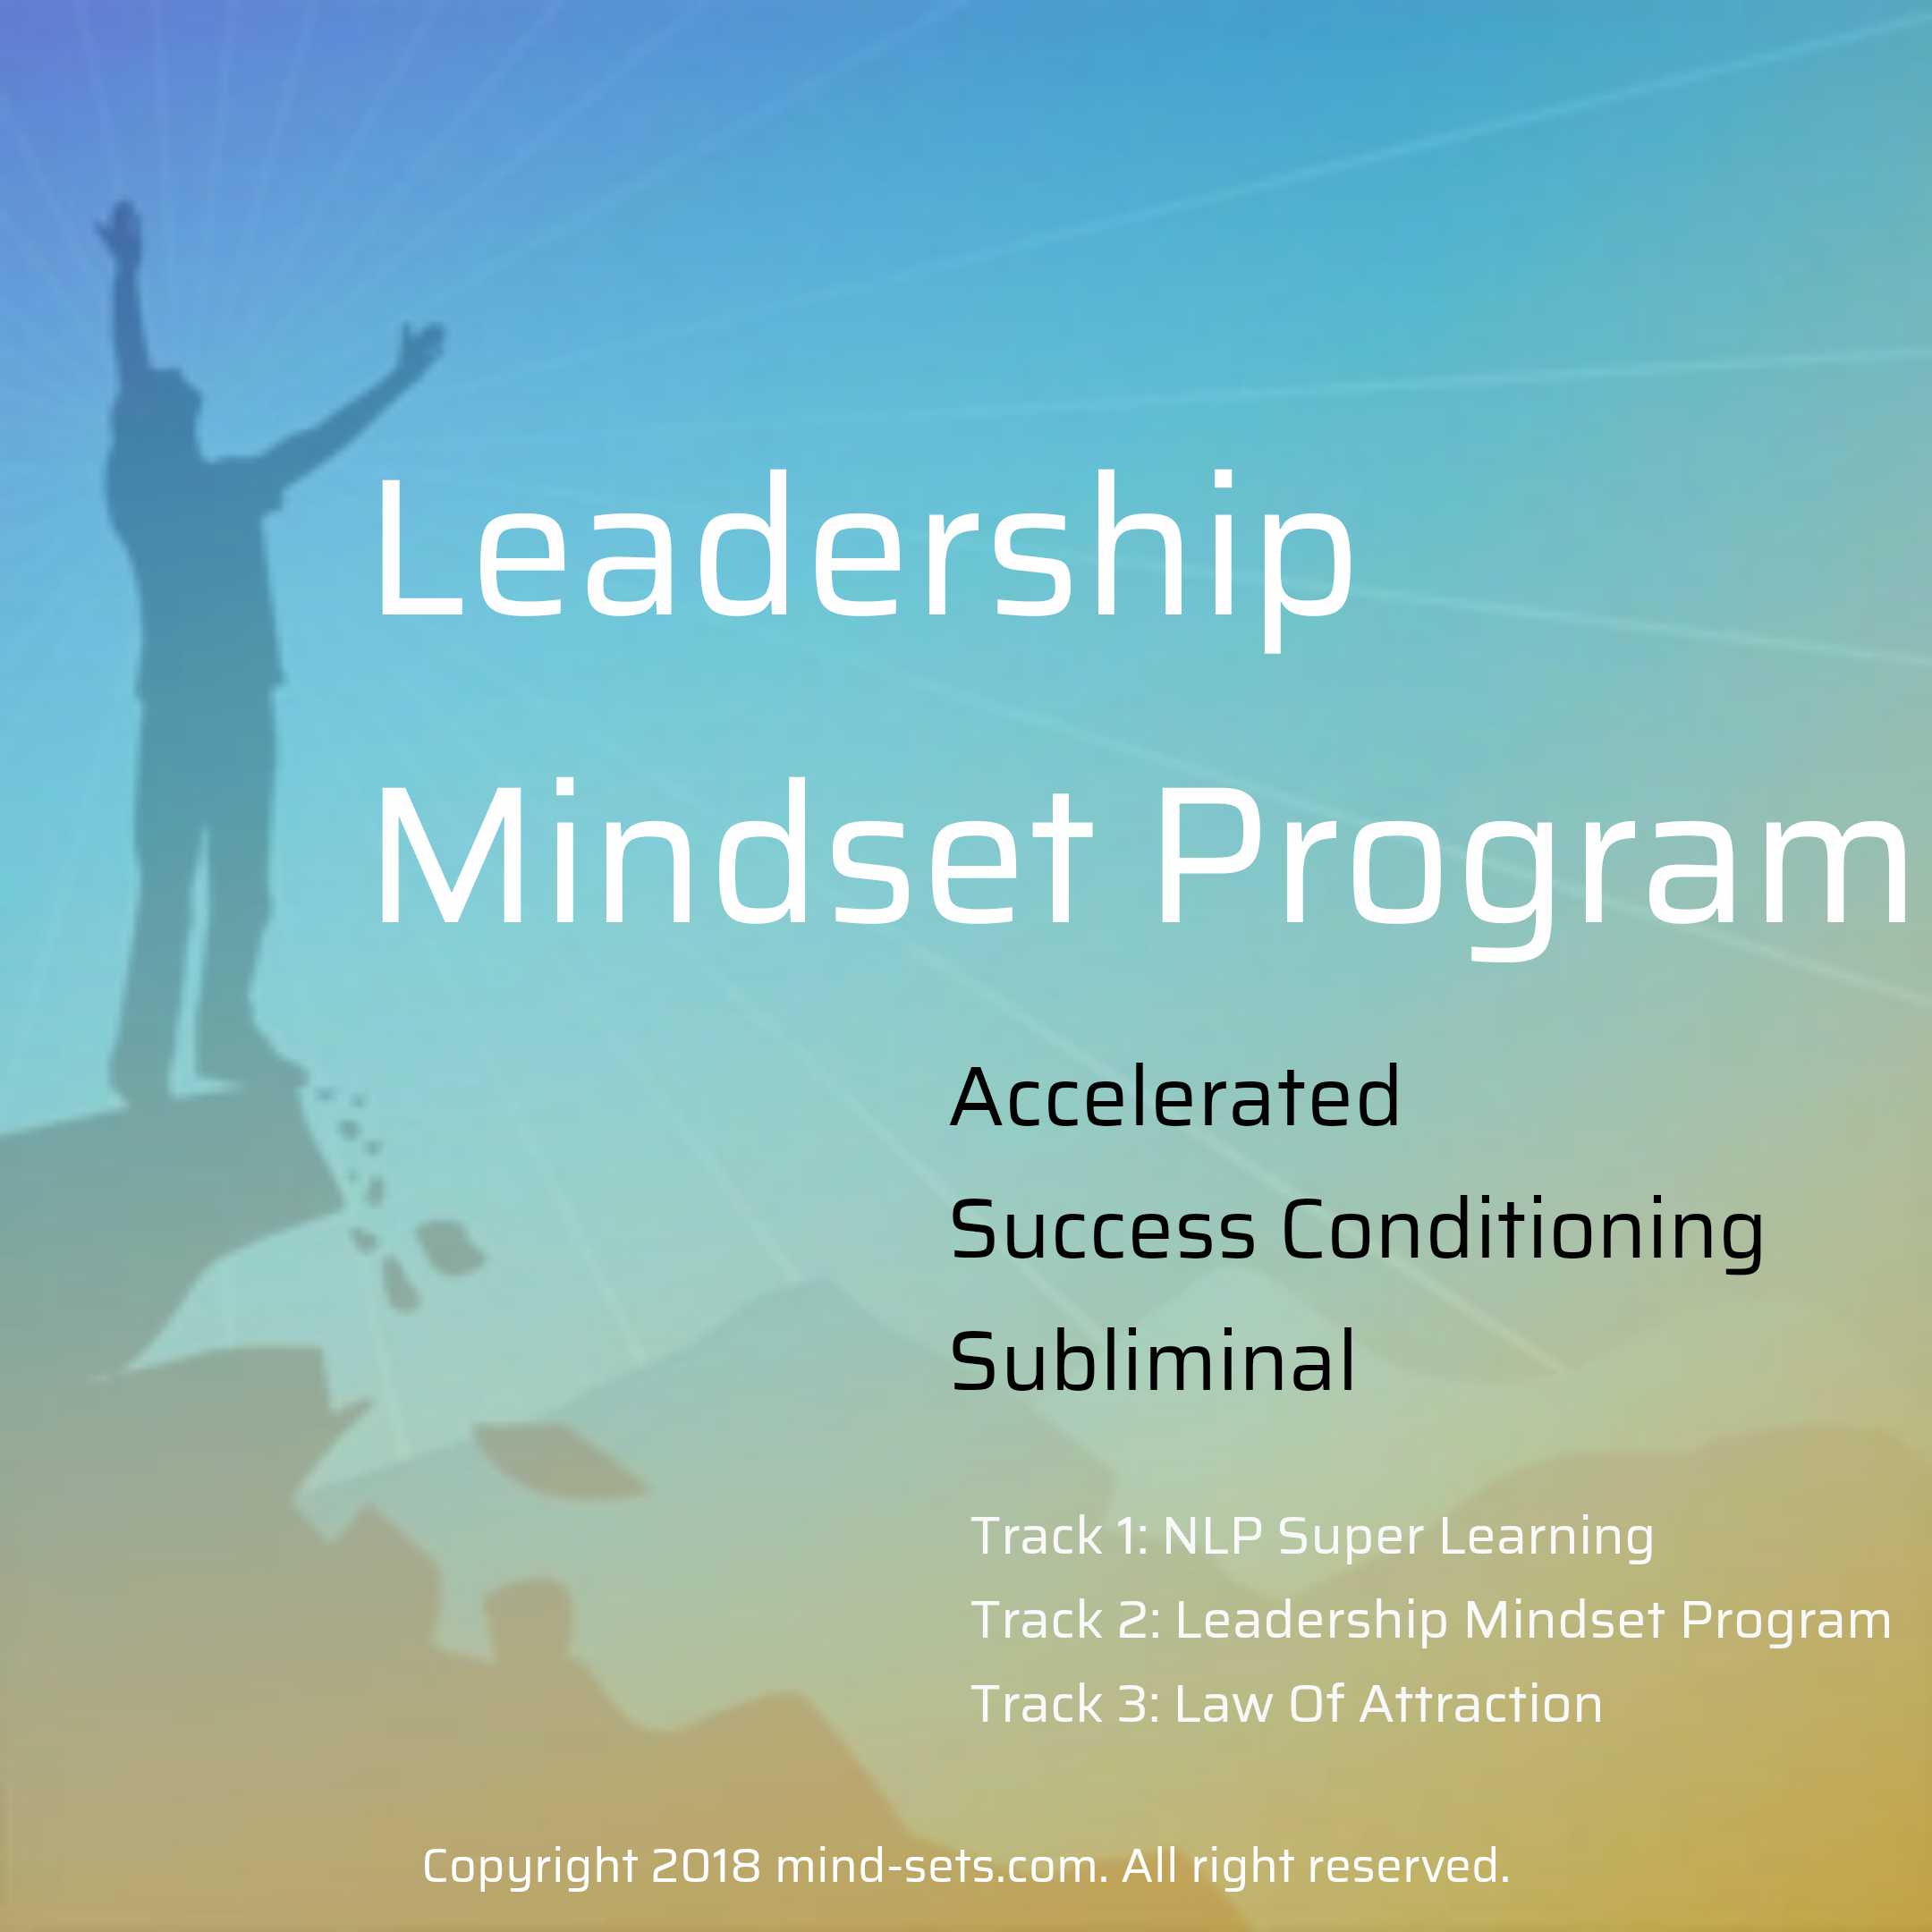 Leadership Mindset Program